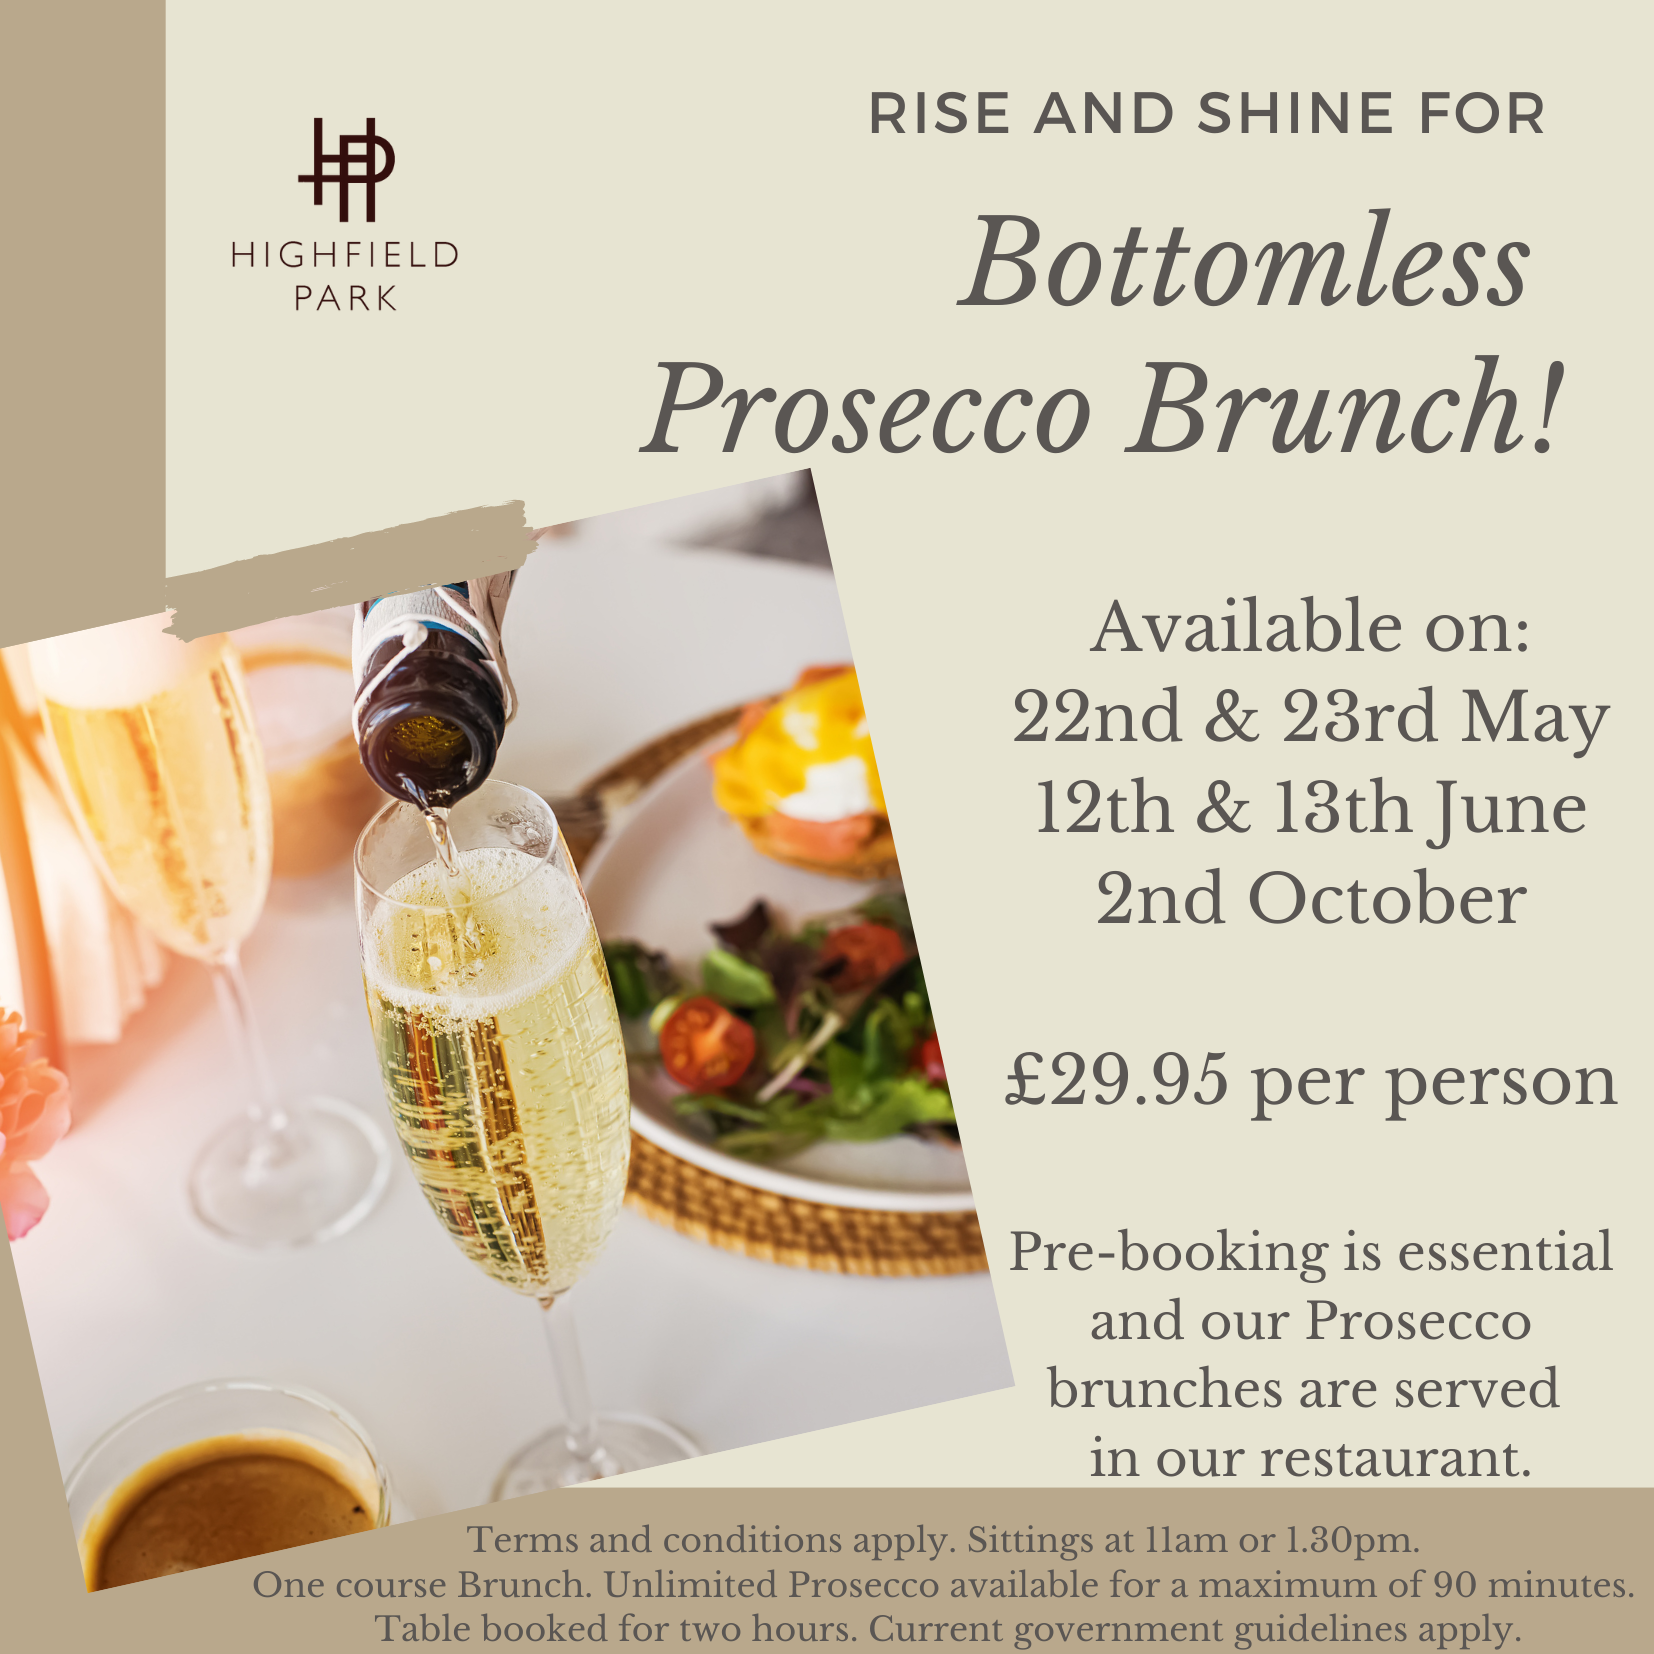 Bottomless Prosecco Brunch